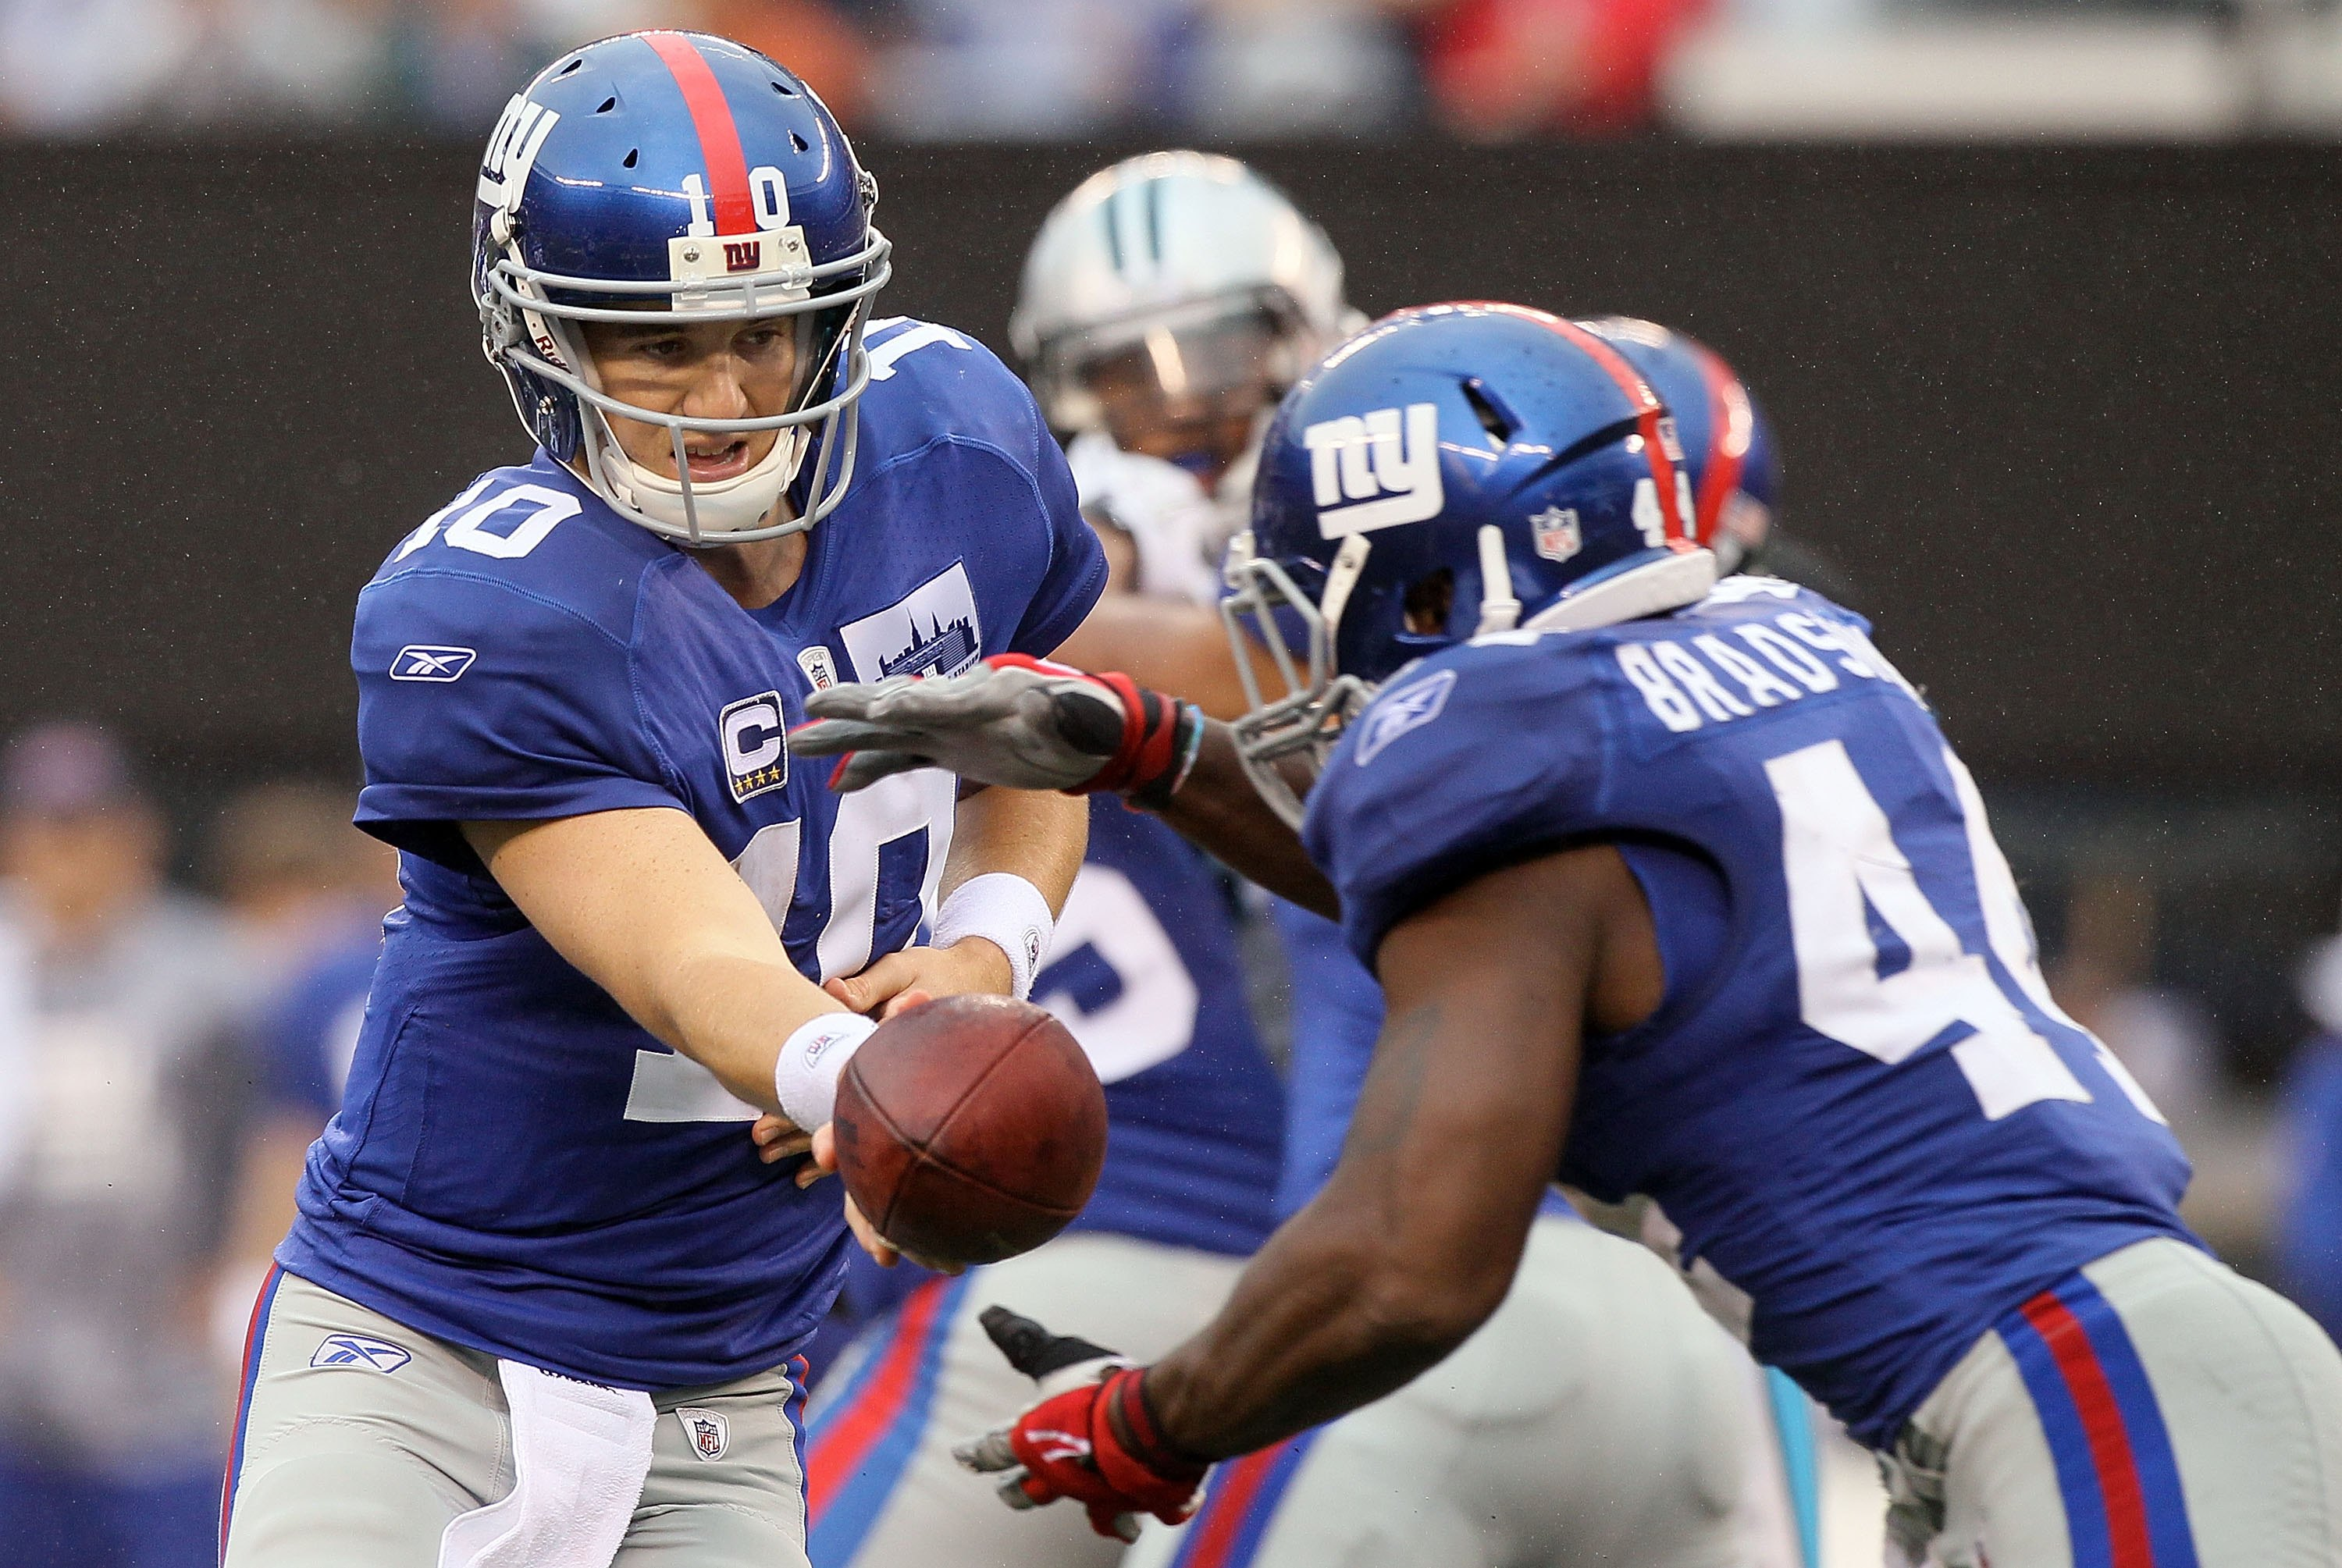 EAST RUTHERFORD, NJ - SEPTEMBER 12:  Eli Manning #10 of the New York Giants hands the ball to Ahmad Bradshaw #44 during their game against  the Carolina Panthers on September 12, 2010 at the New Meadowlands Stadium in East Rutherford, New Jersey. The Gian